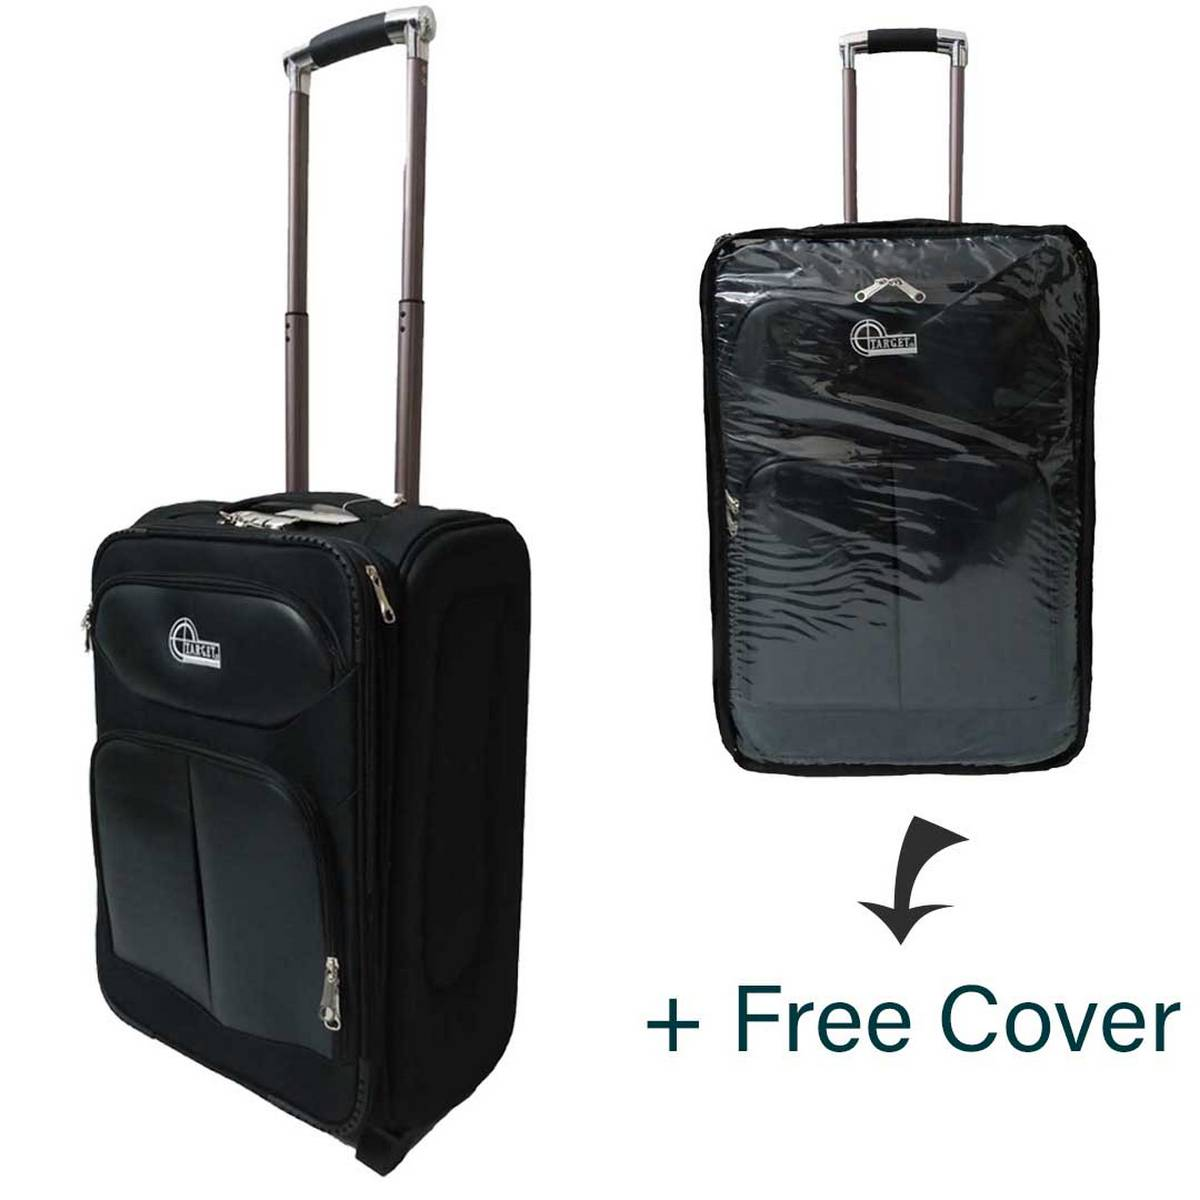 20 inch Travel Trolley Suitcase with Protective Cover